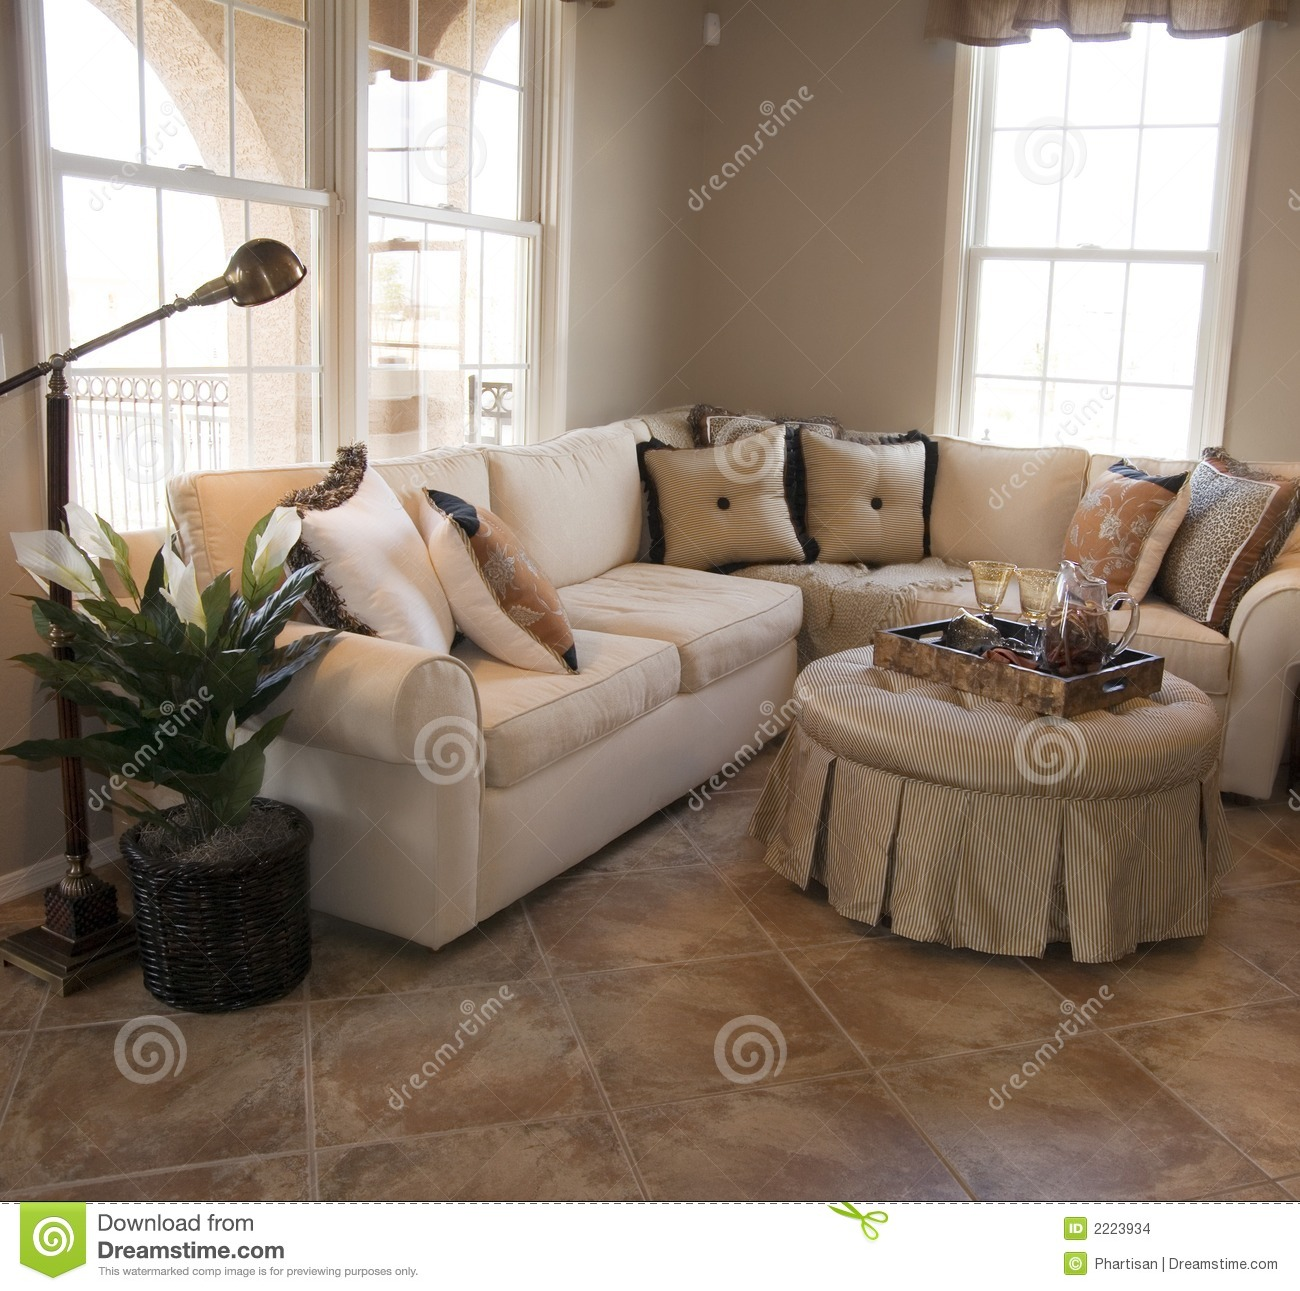 Barano Model Home Interior Design: Model Home Interior Design Stock Images